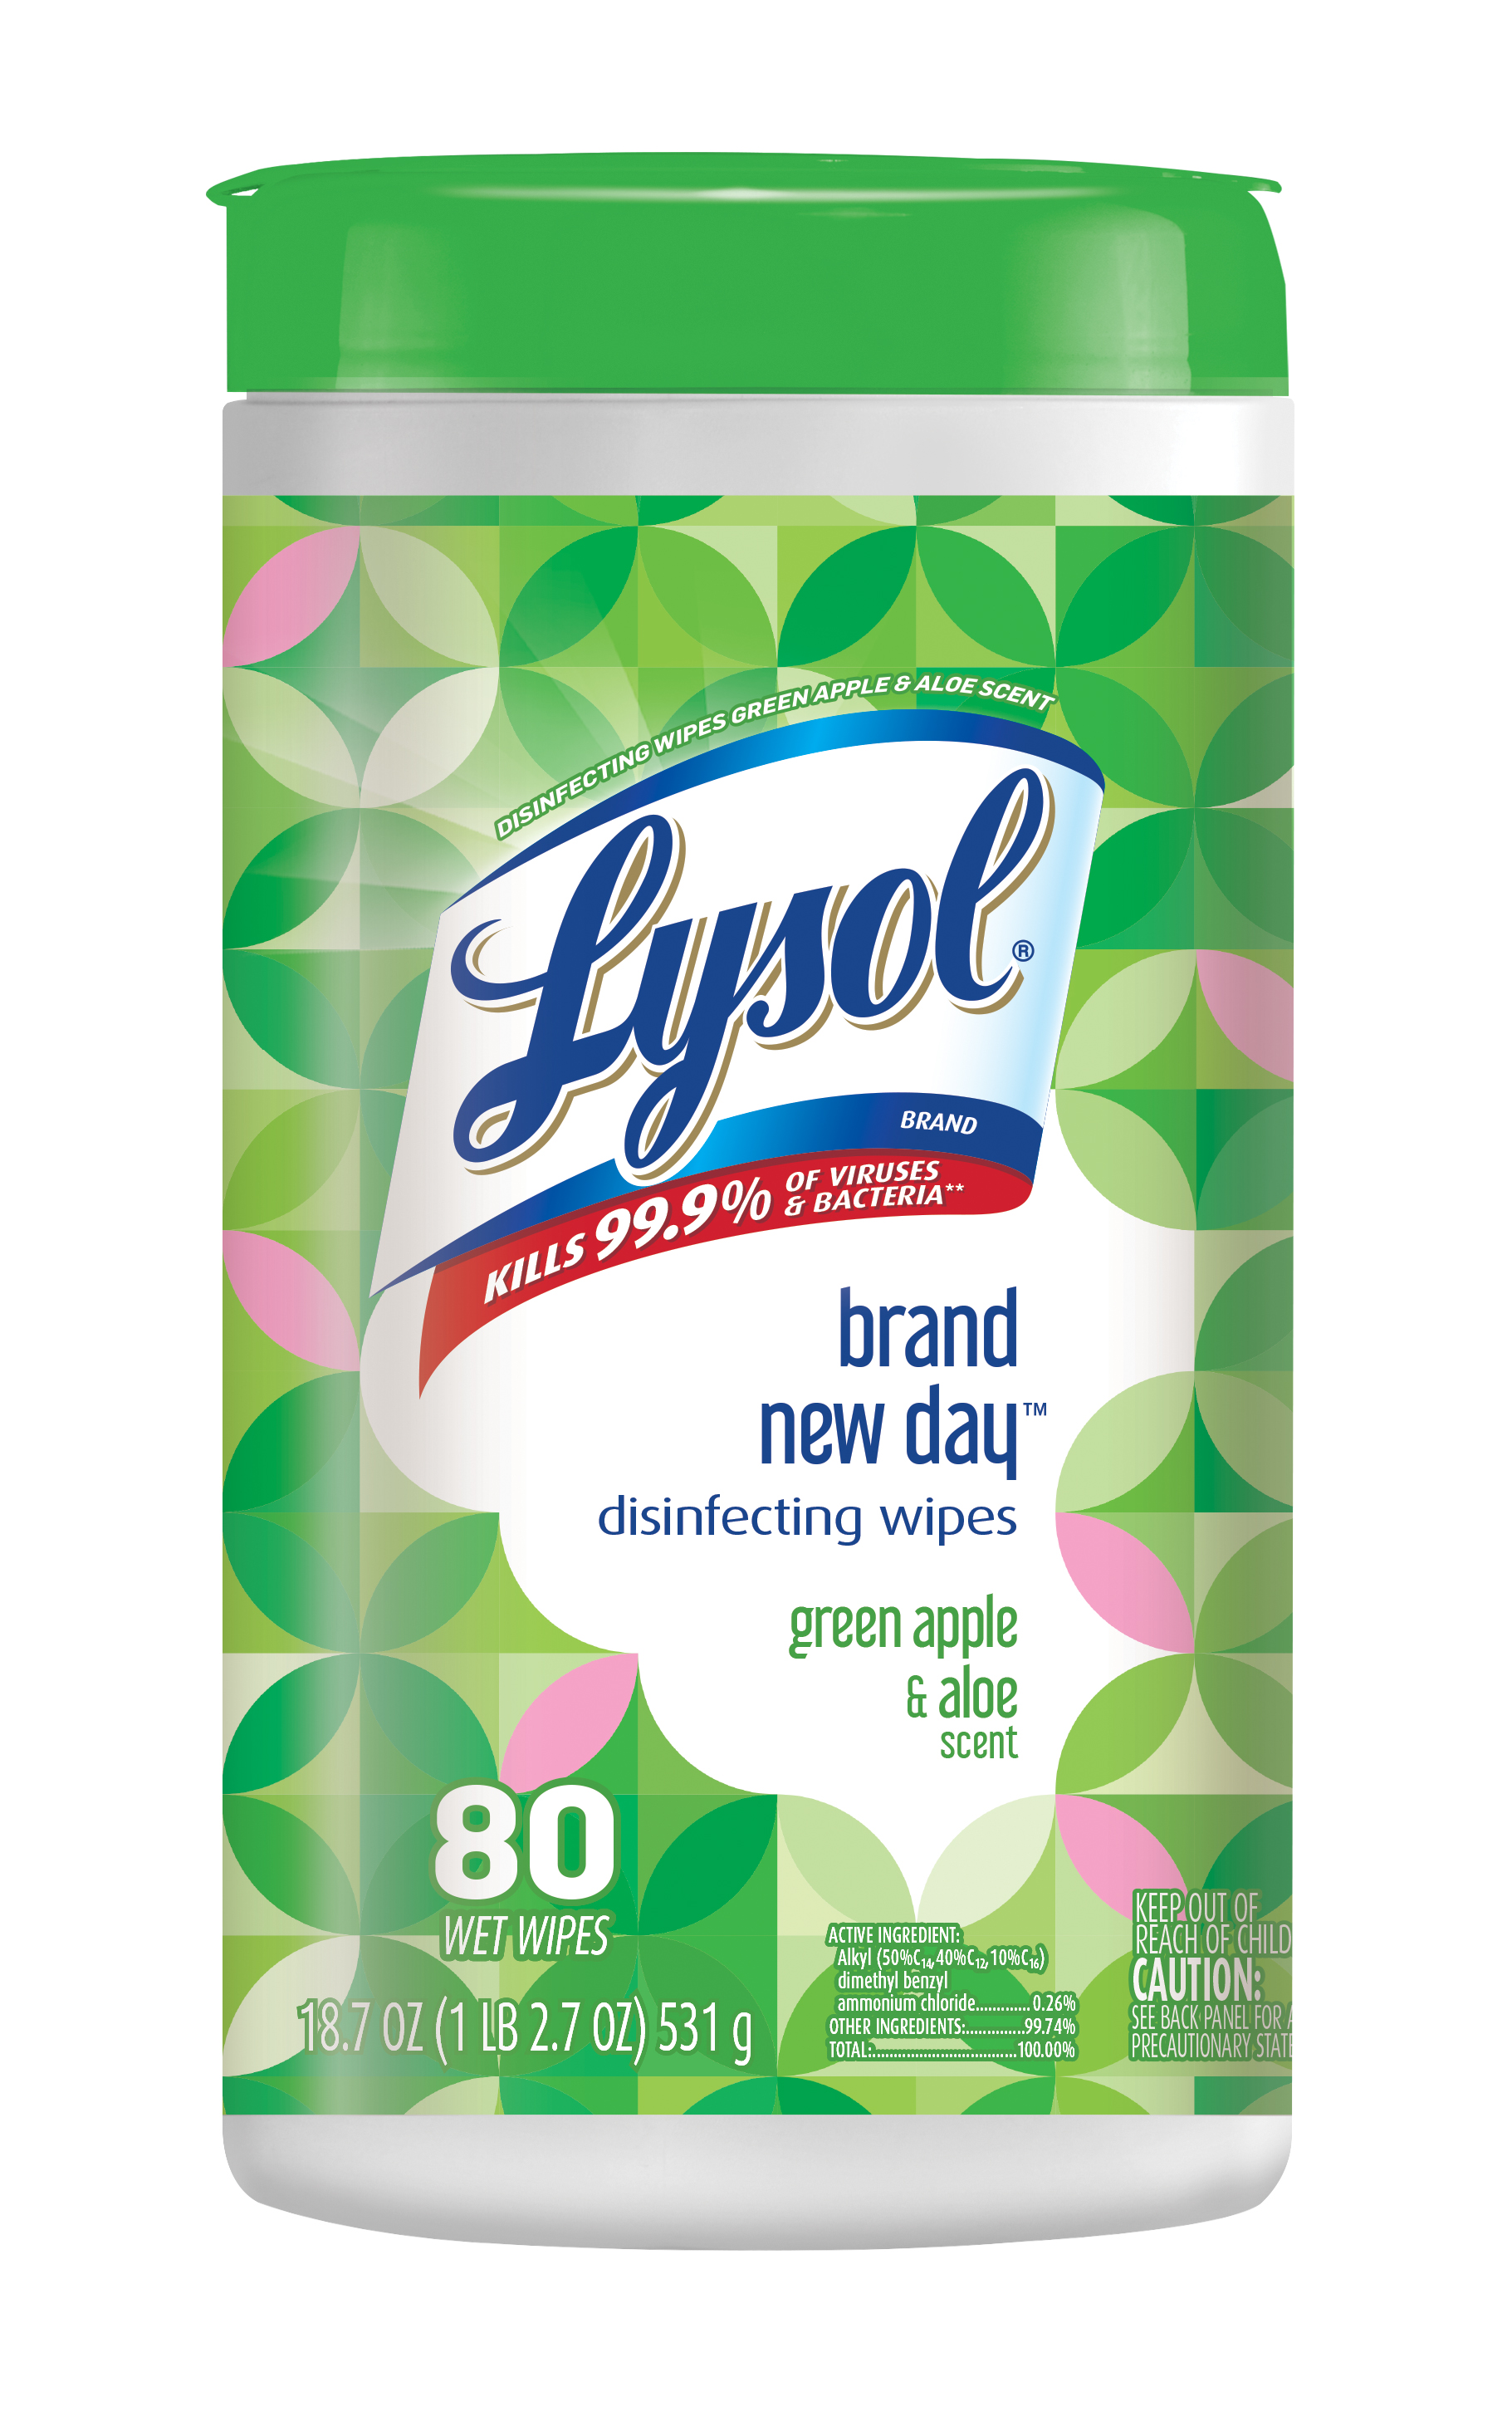 Lysol Disinfecting Wipes, Green Apple & Aloe, 80ct, Brand New Day